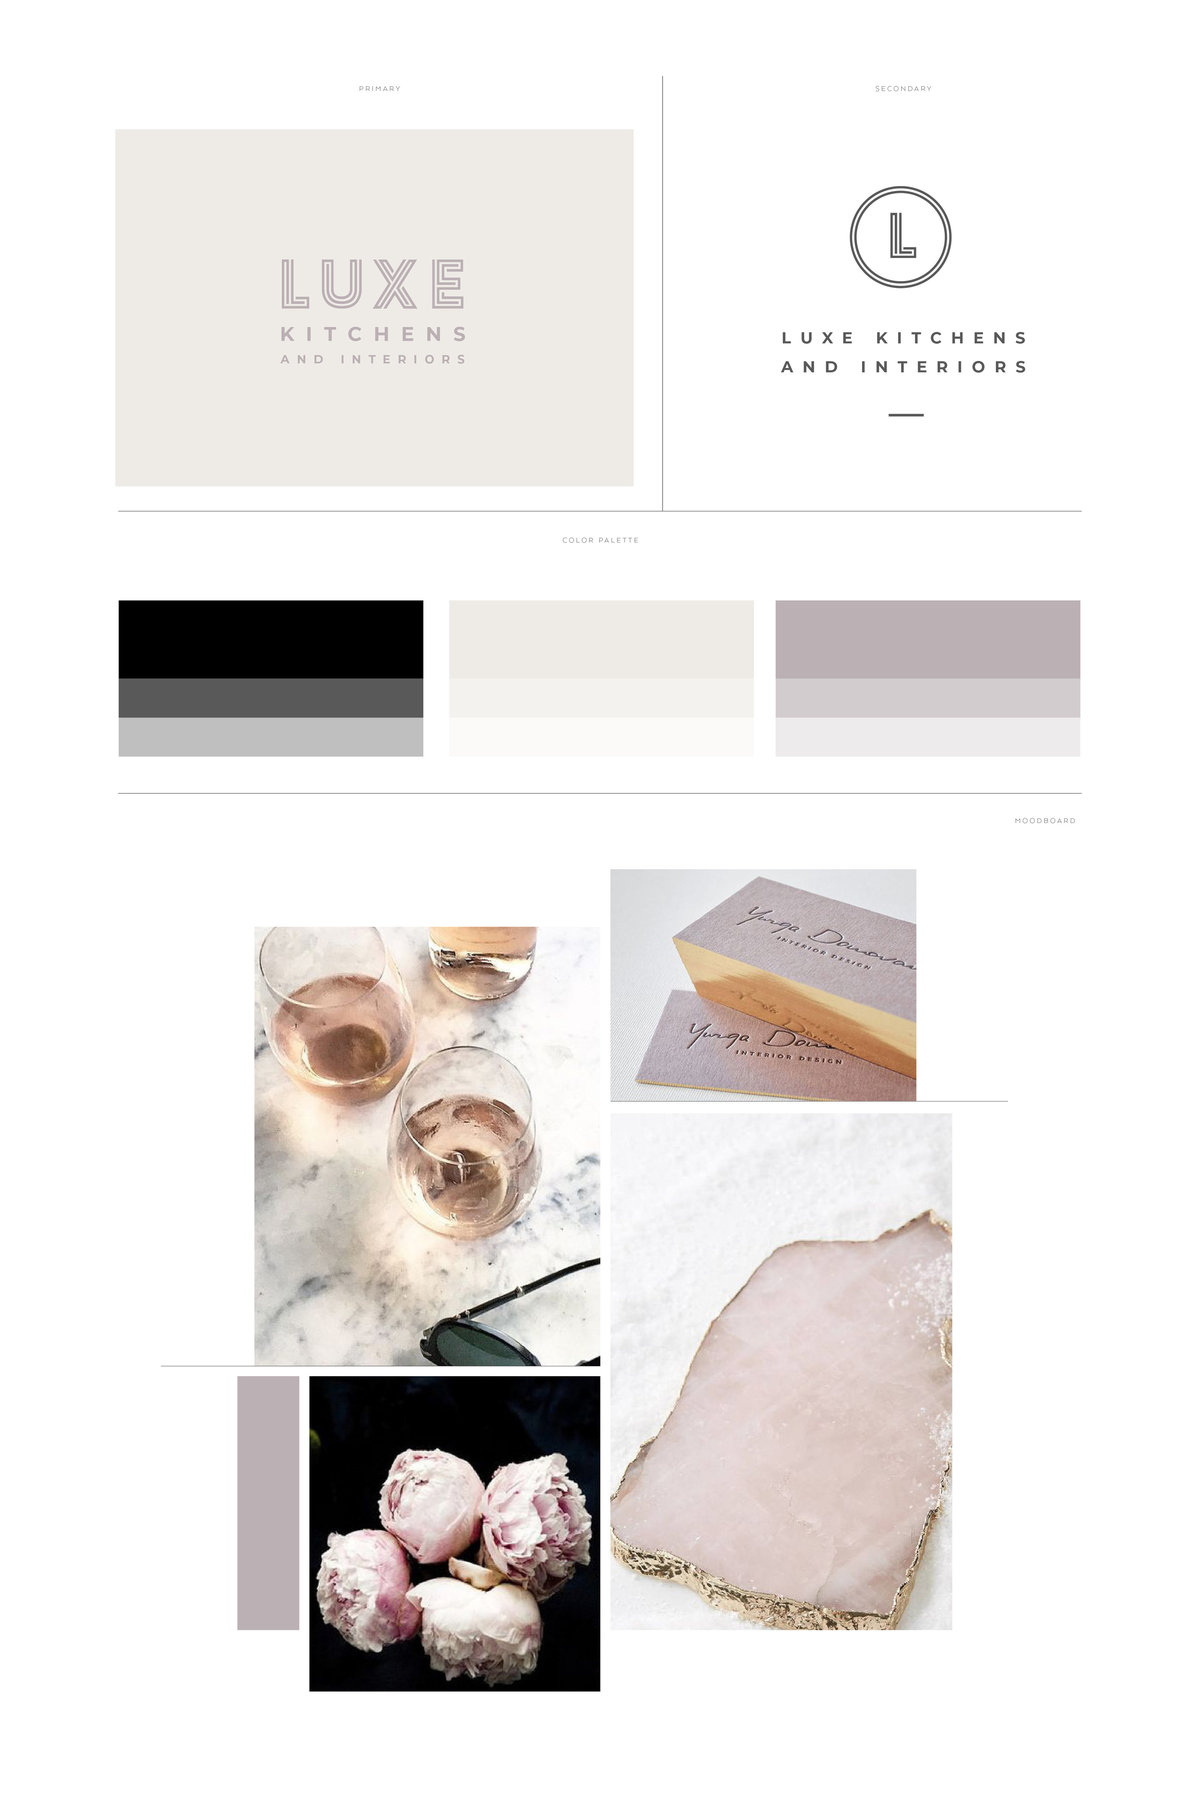 LUXEKITCHENS_HONOR_BRANDBOARD_03